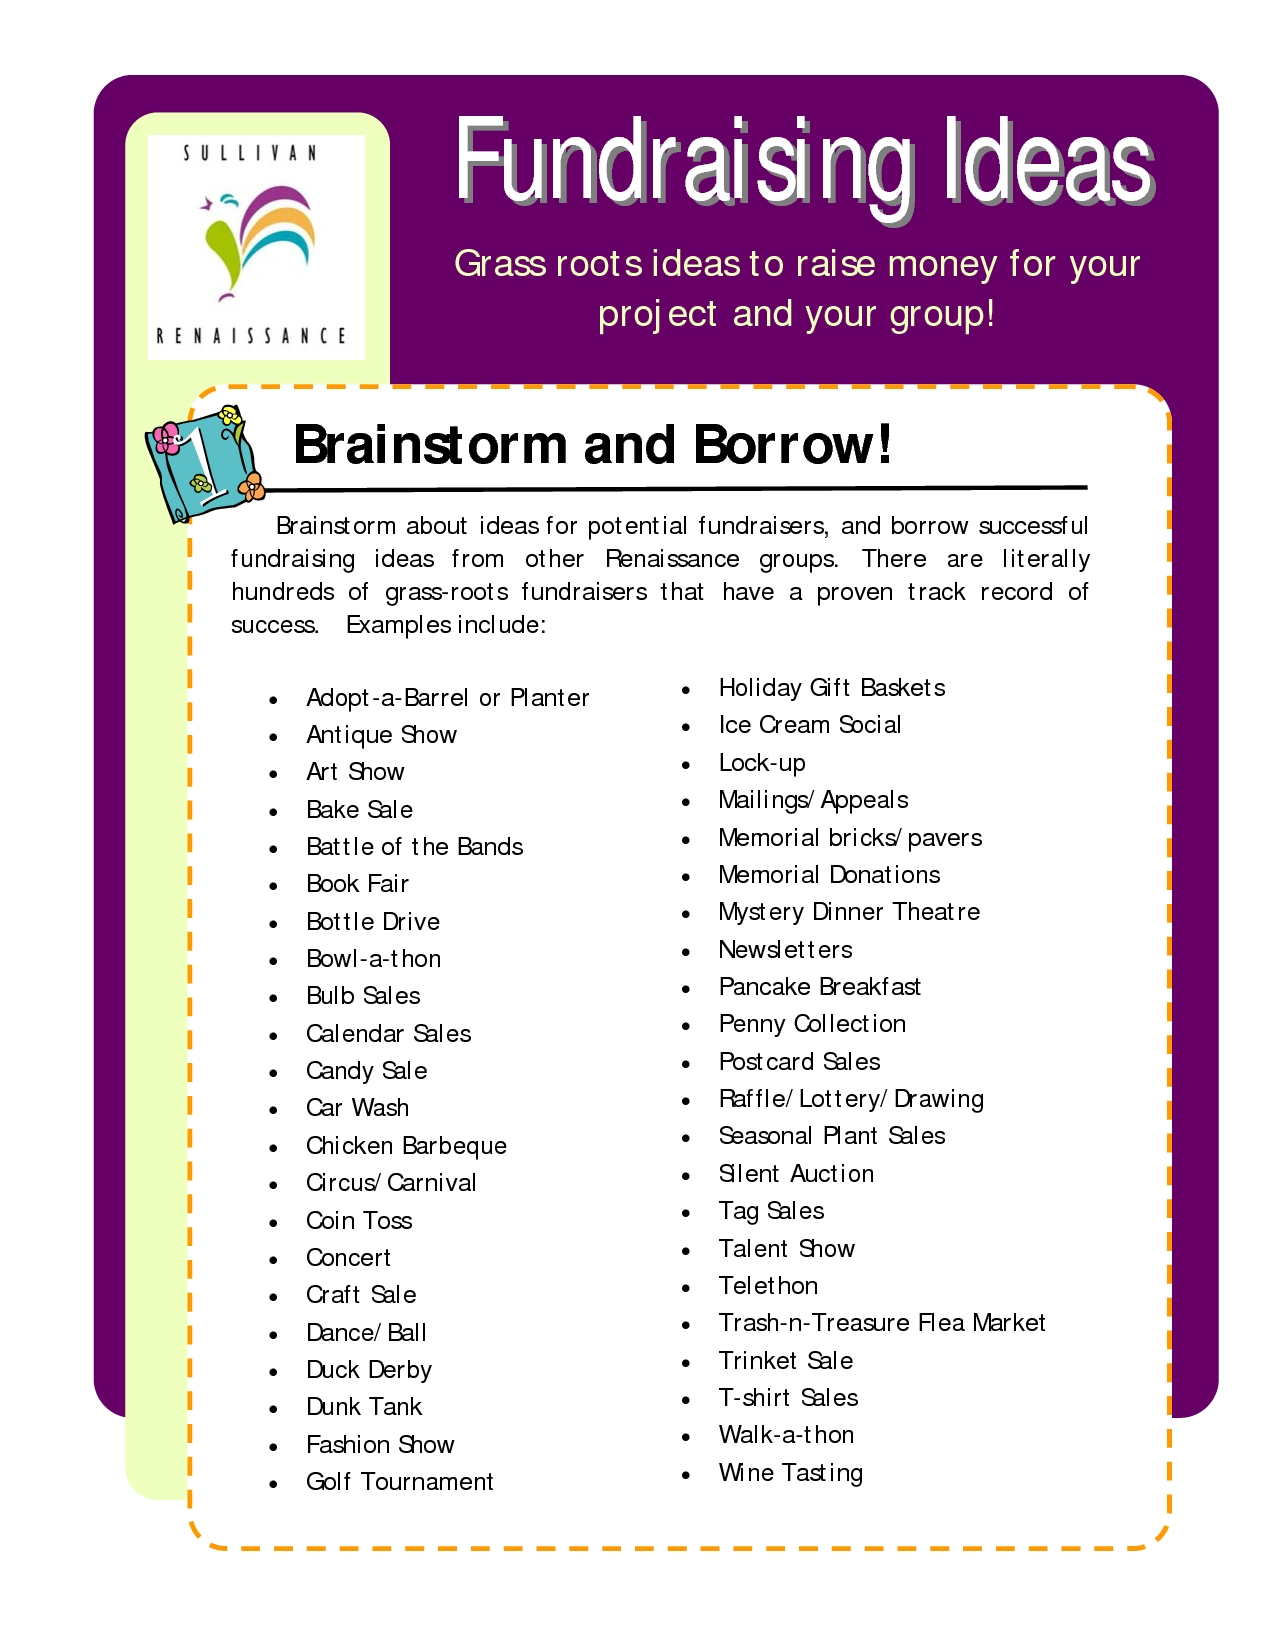 10 Fabulous Ideas For Fundraising For School fundraising ideas grass roots ideas to raise money for your cause 38 2021